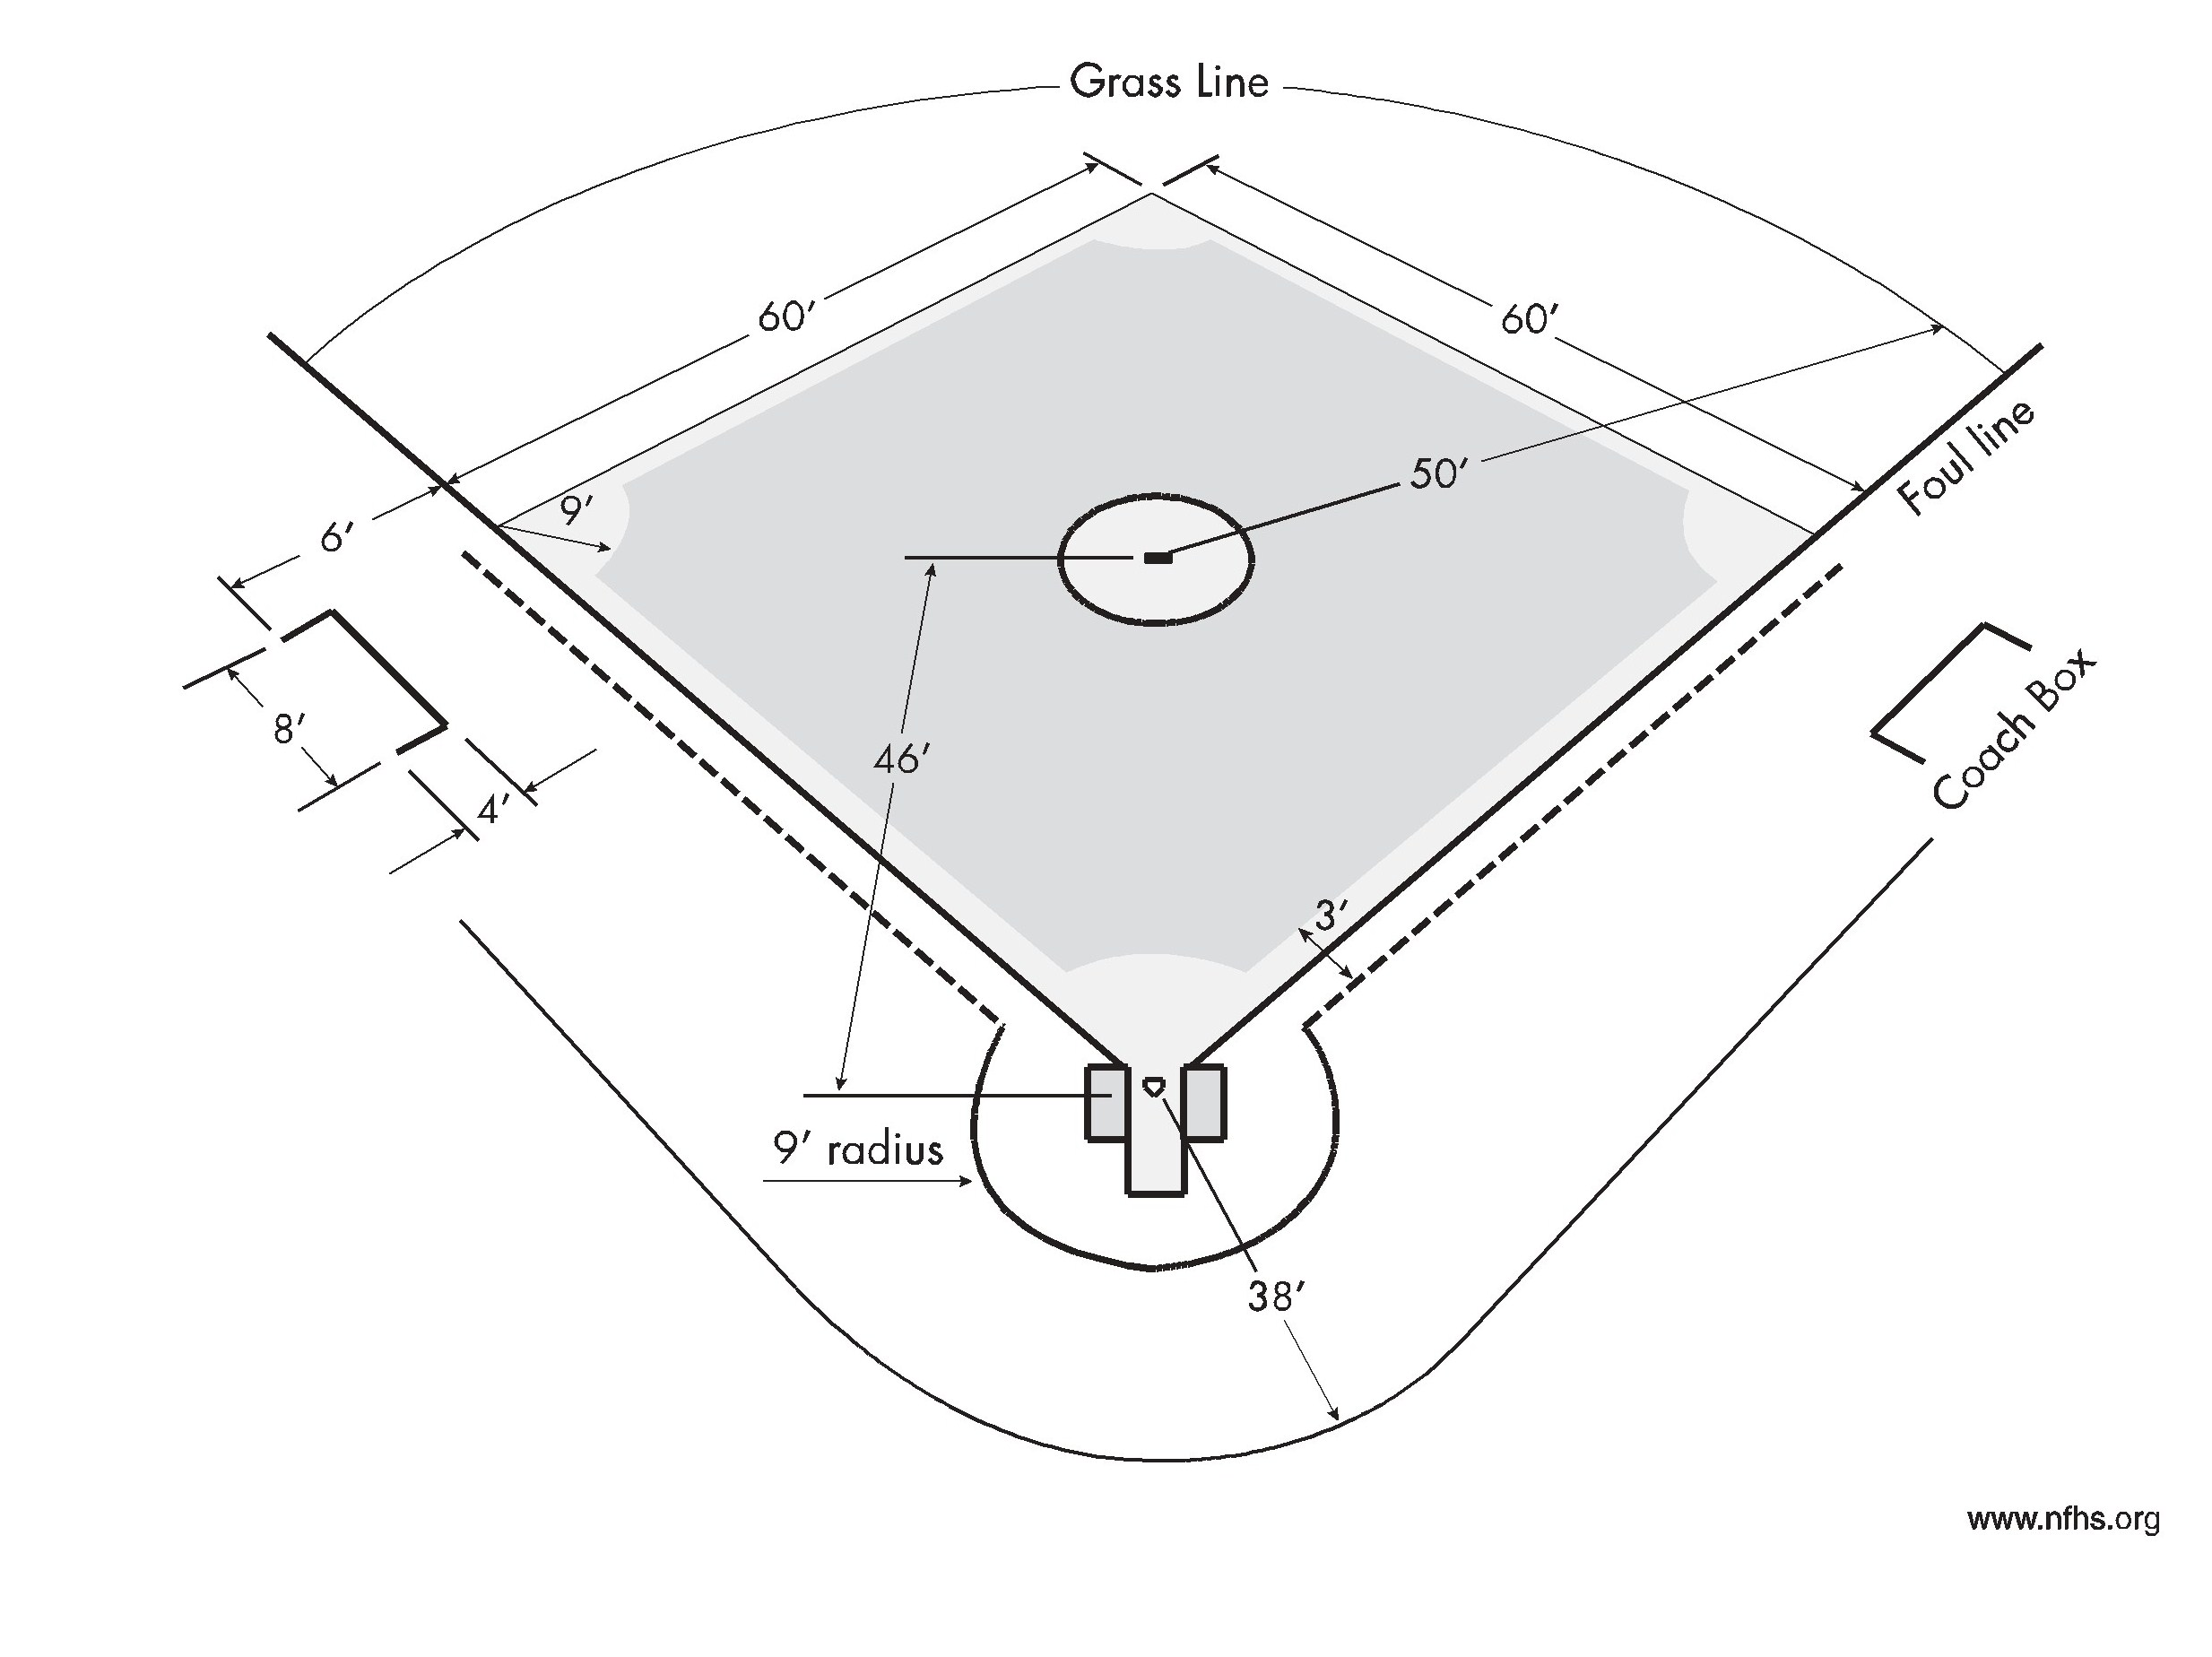 softball diamond drawing at getdrawings com free for personal use